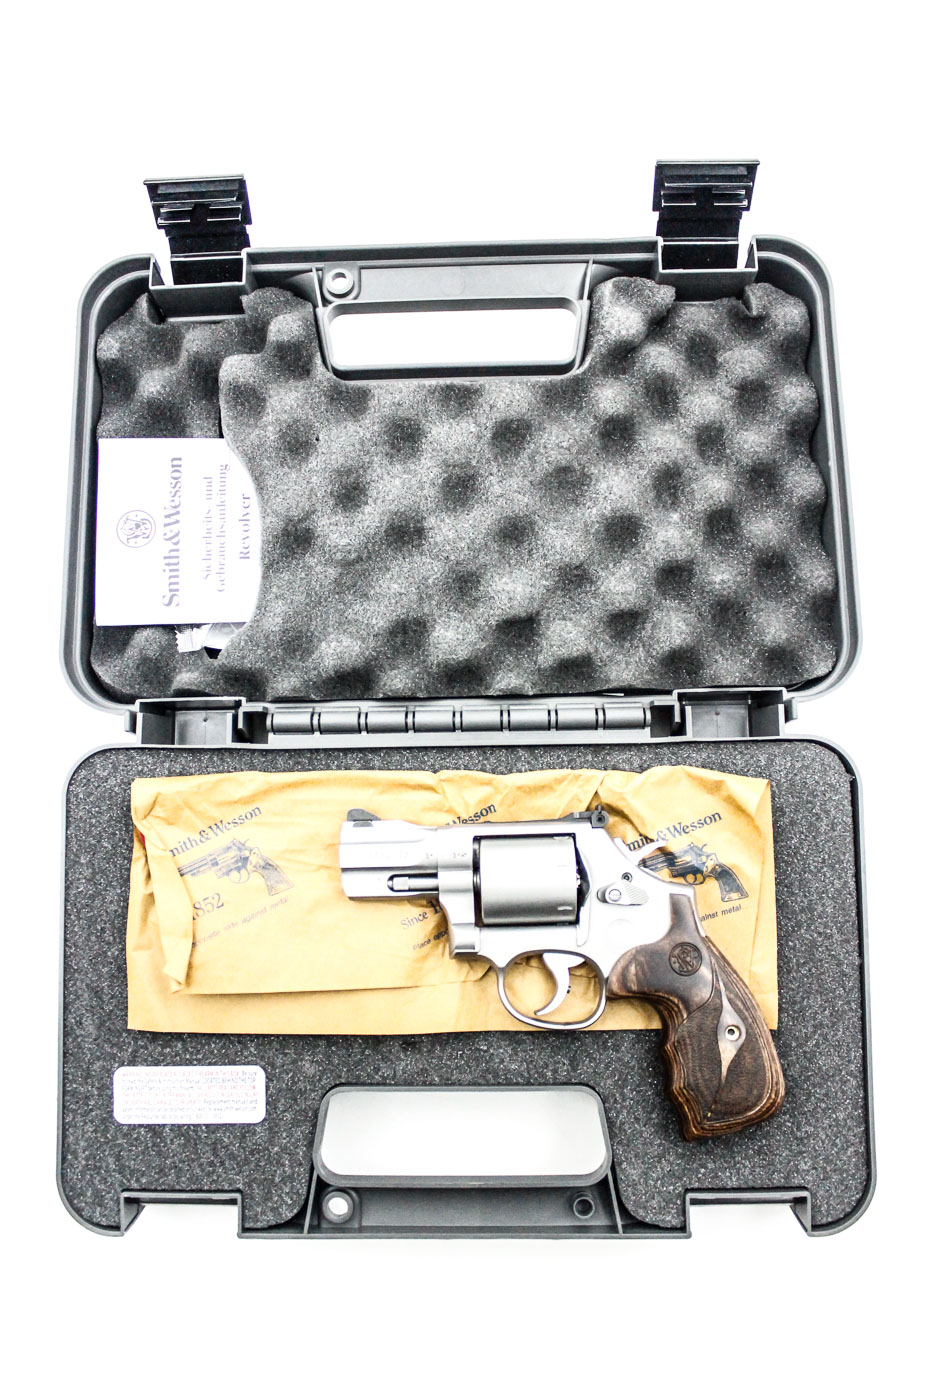 Smith & Wesson 686 Performance Center 7-Shot, .357 Magnum - Image 7